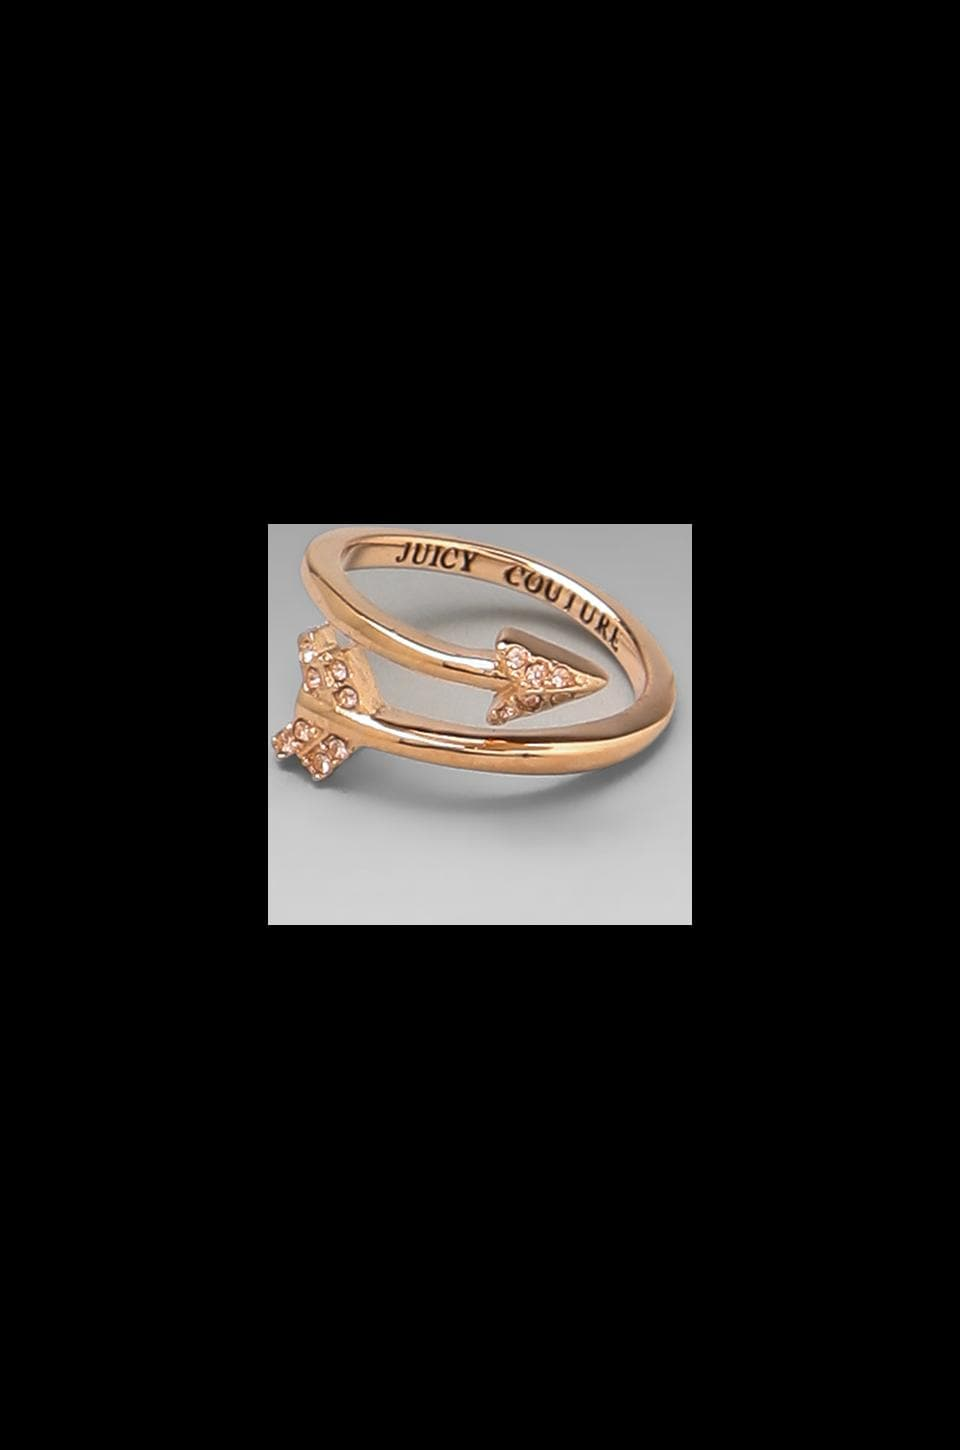 Juicy Couture Pave Arrow Ring in Pink Gold